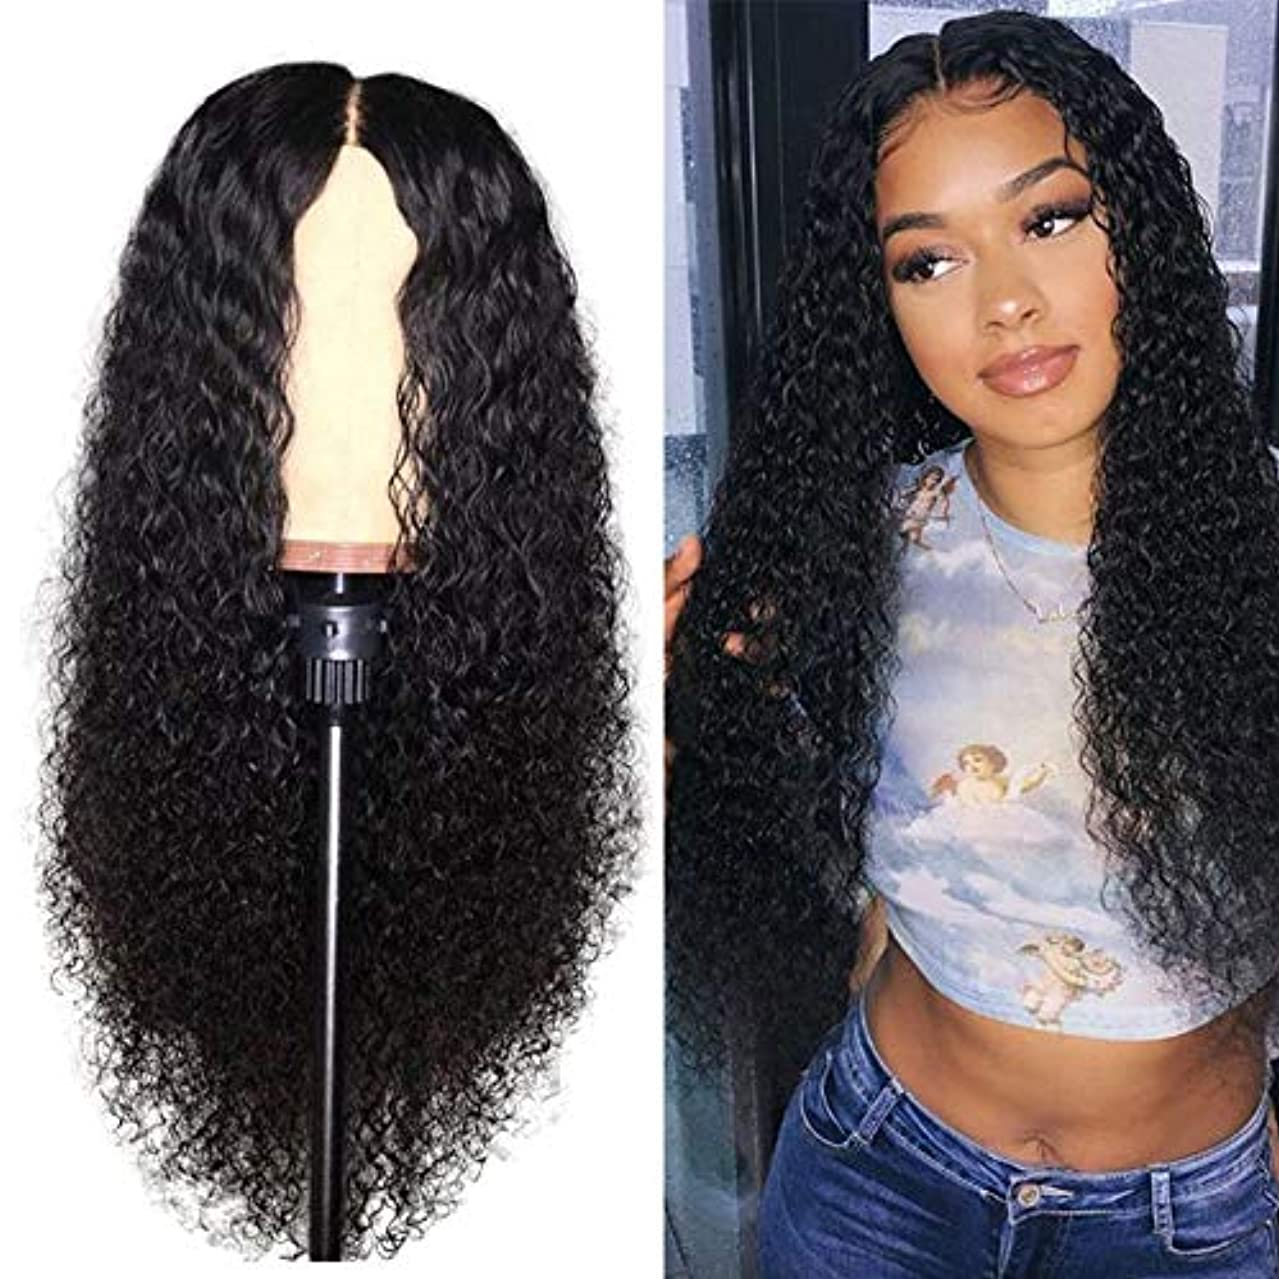 Lace Front Wigs Human Hair for Black Women Curly Hair Bleached Konts Brazilian Virgin Hair Lace Front Wigs Natural Hairline with Baby Hair(10